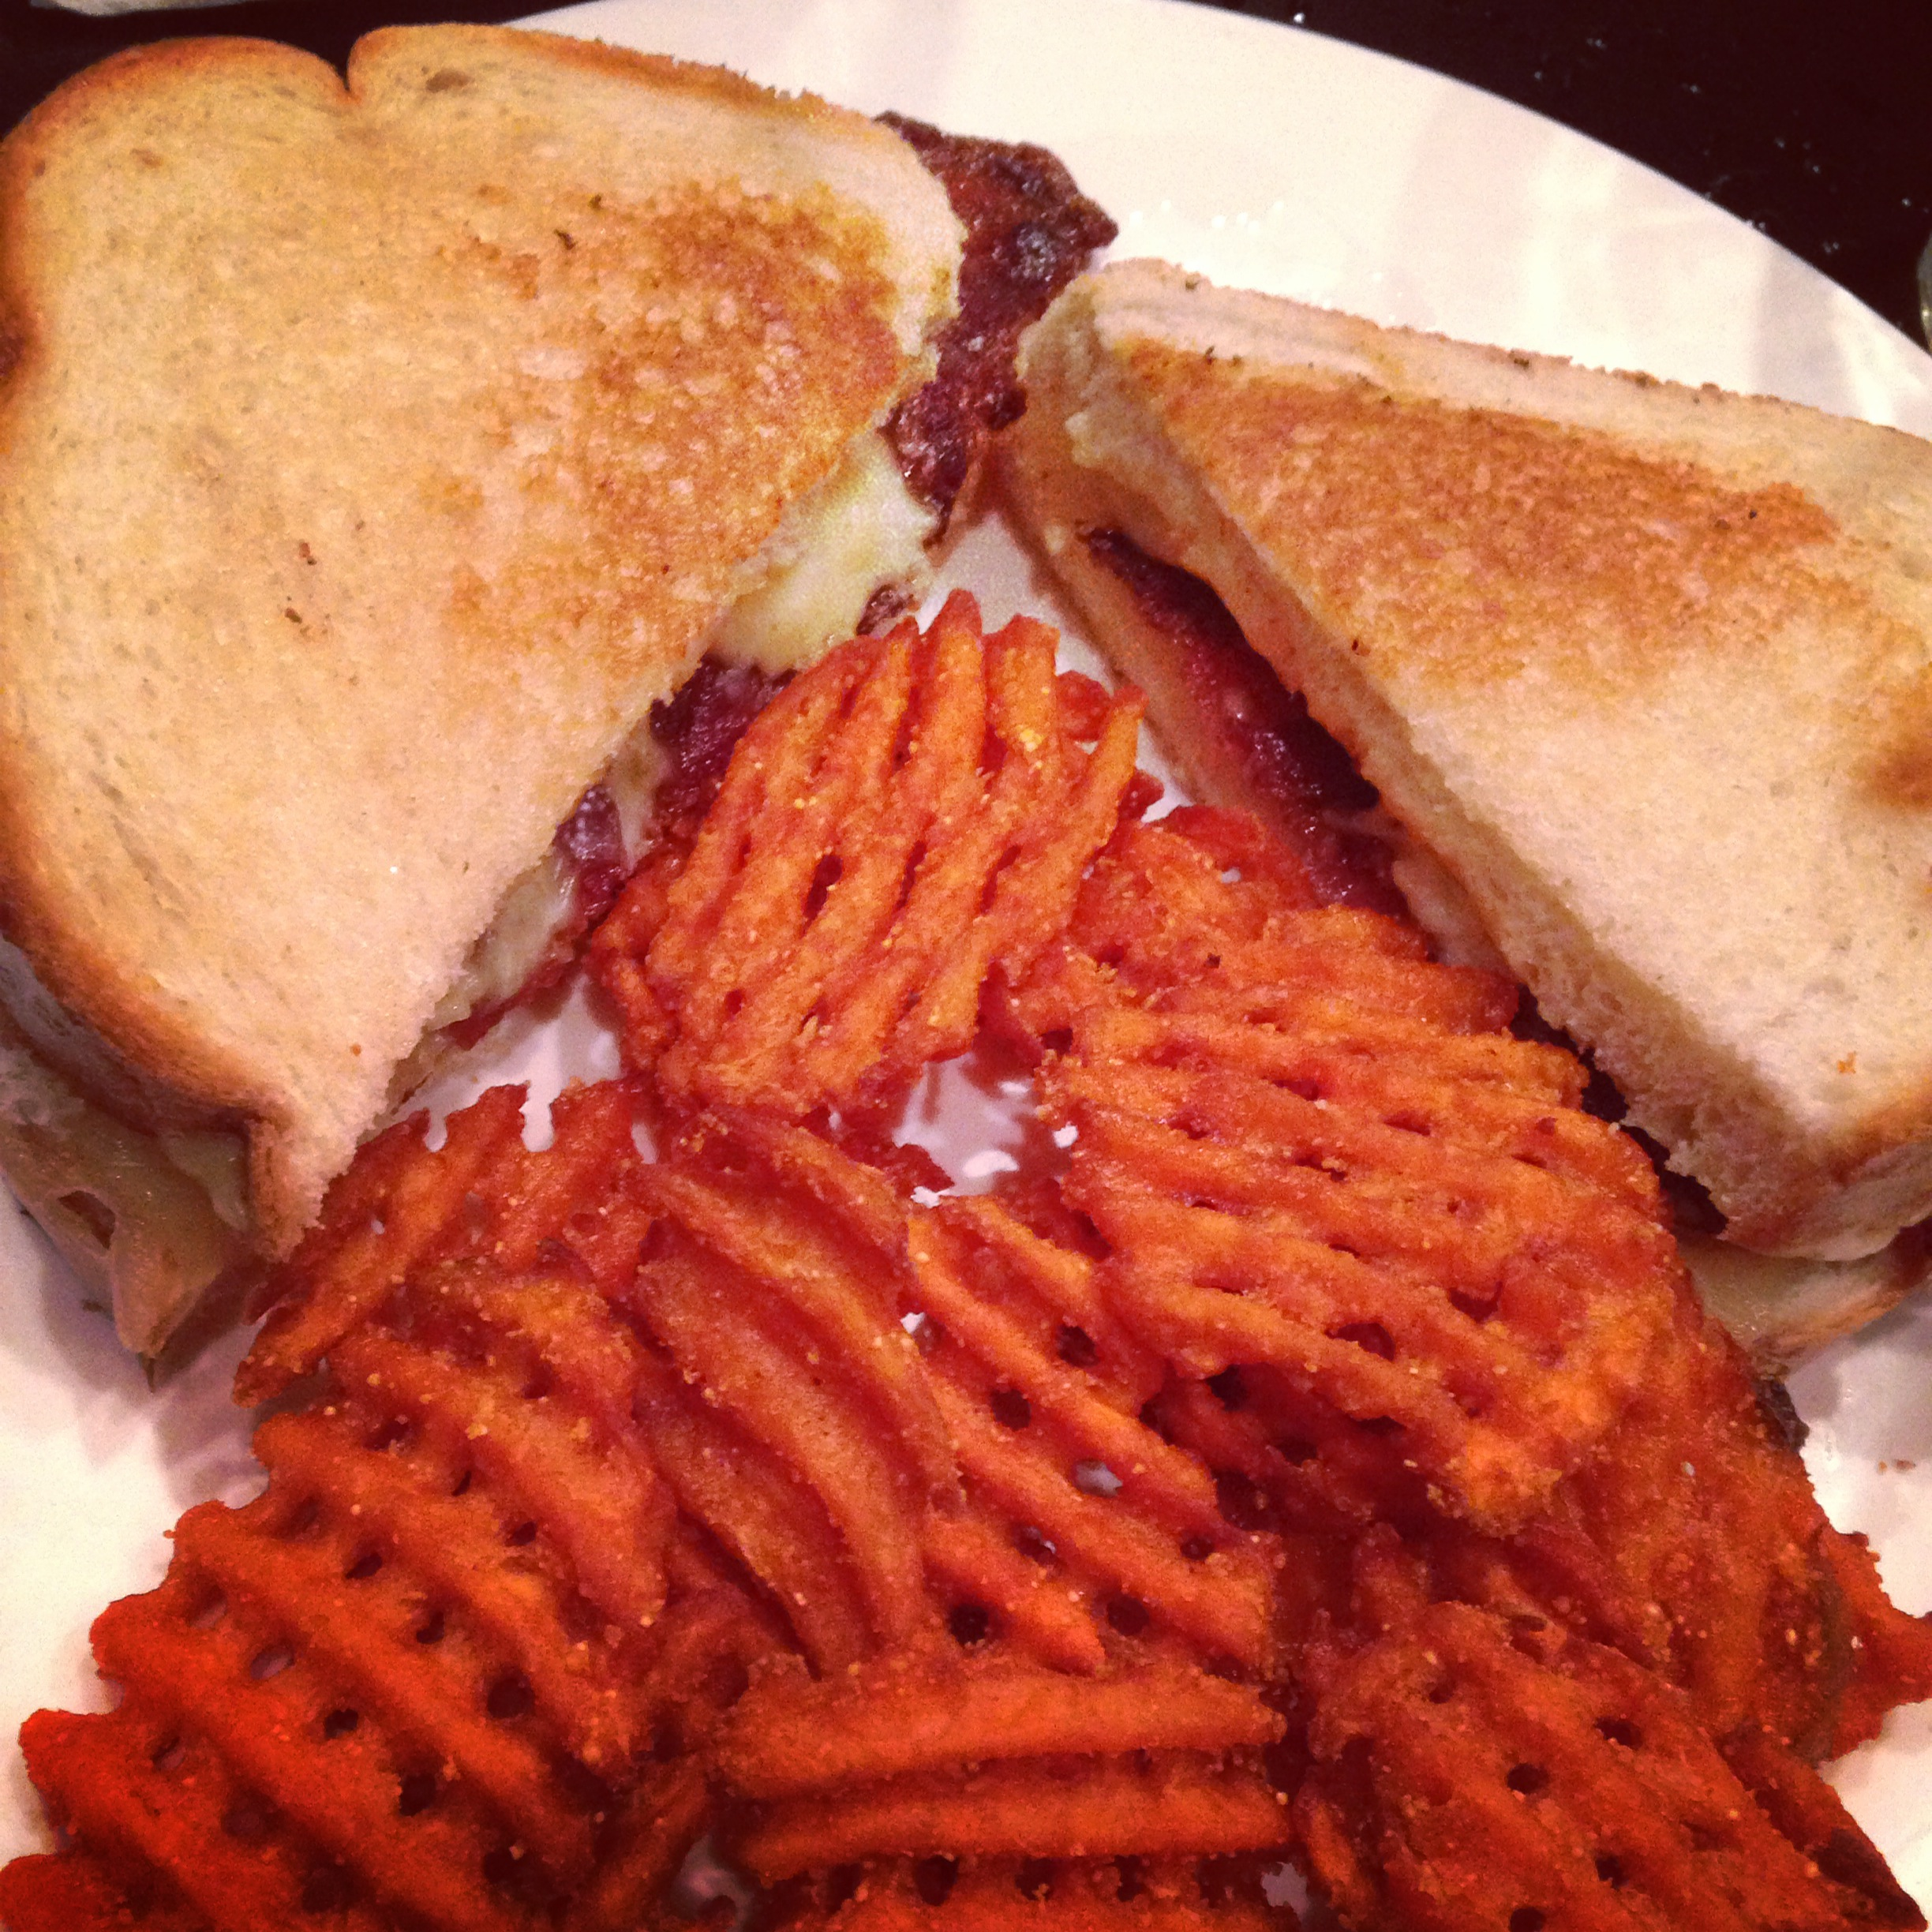 The grilled cheese of the week - This time, it was a crab meat and bacon paring with pepper jack cheese on fresh sourdough bread. Throw in some sweet potato fries and it was fabulous!